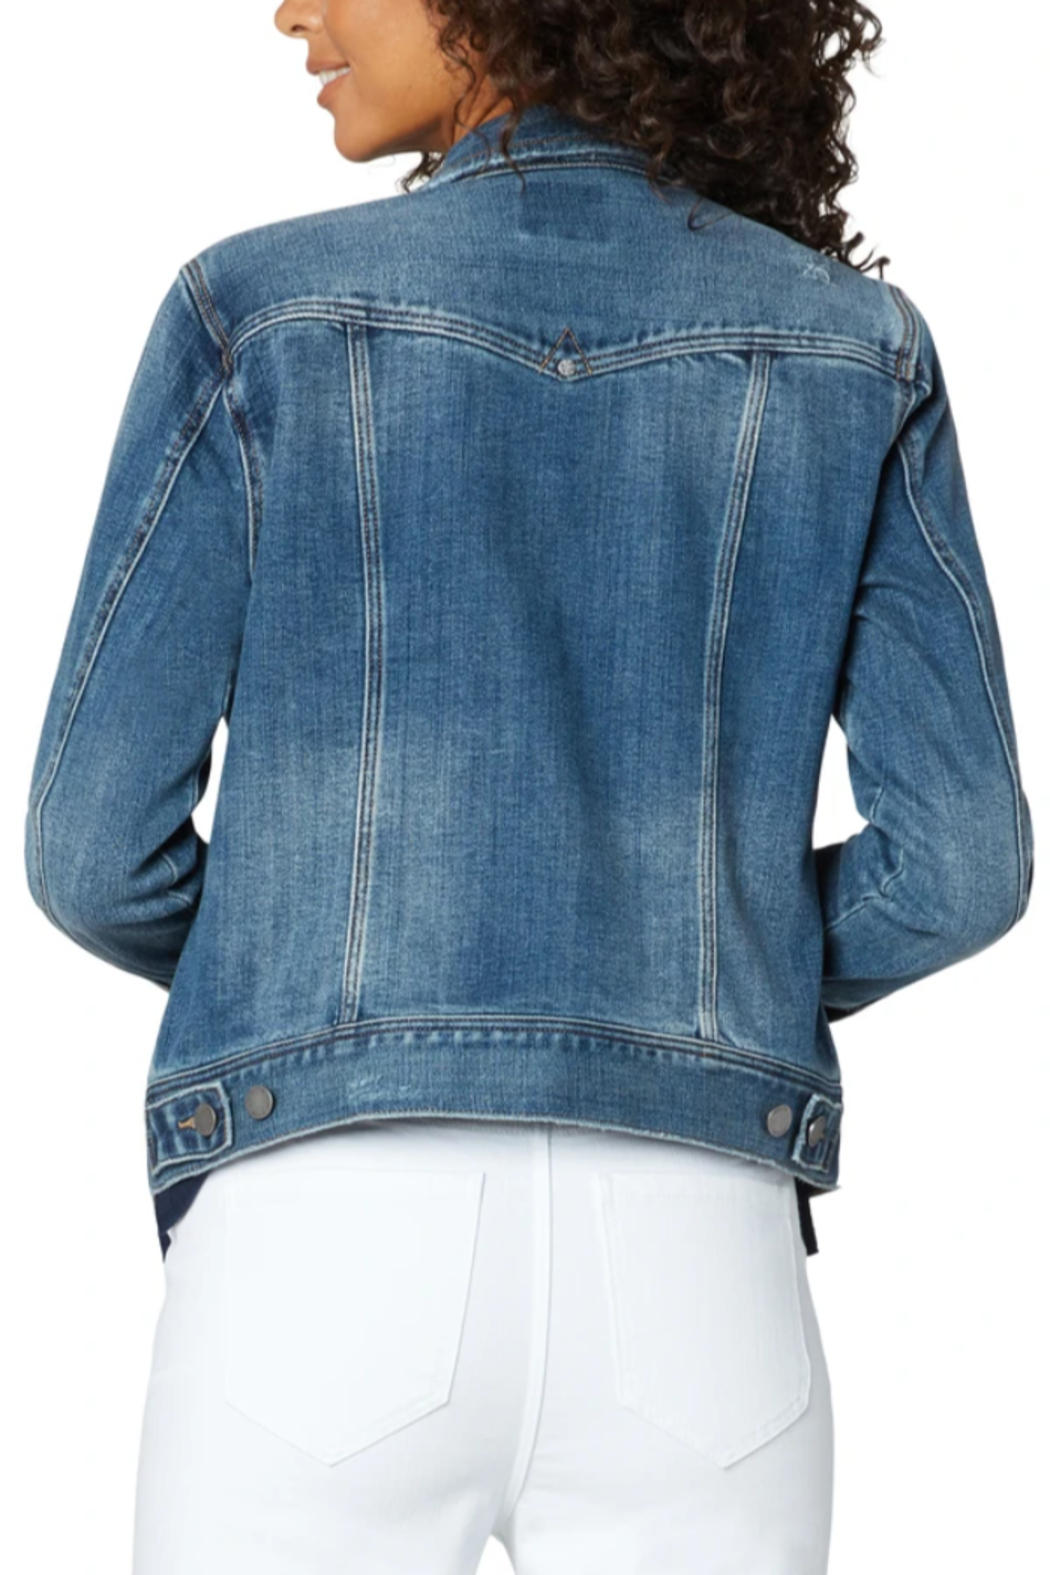 Liverpool  Classic Jean Jacket - Front Full Image